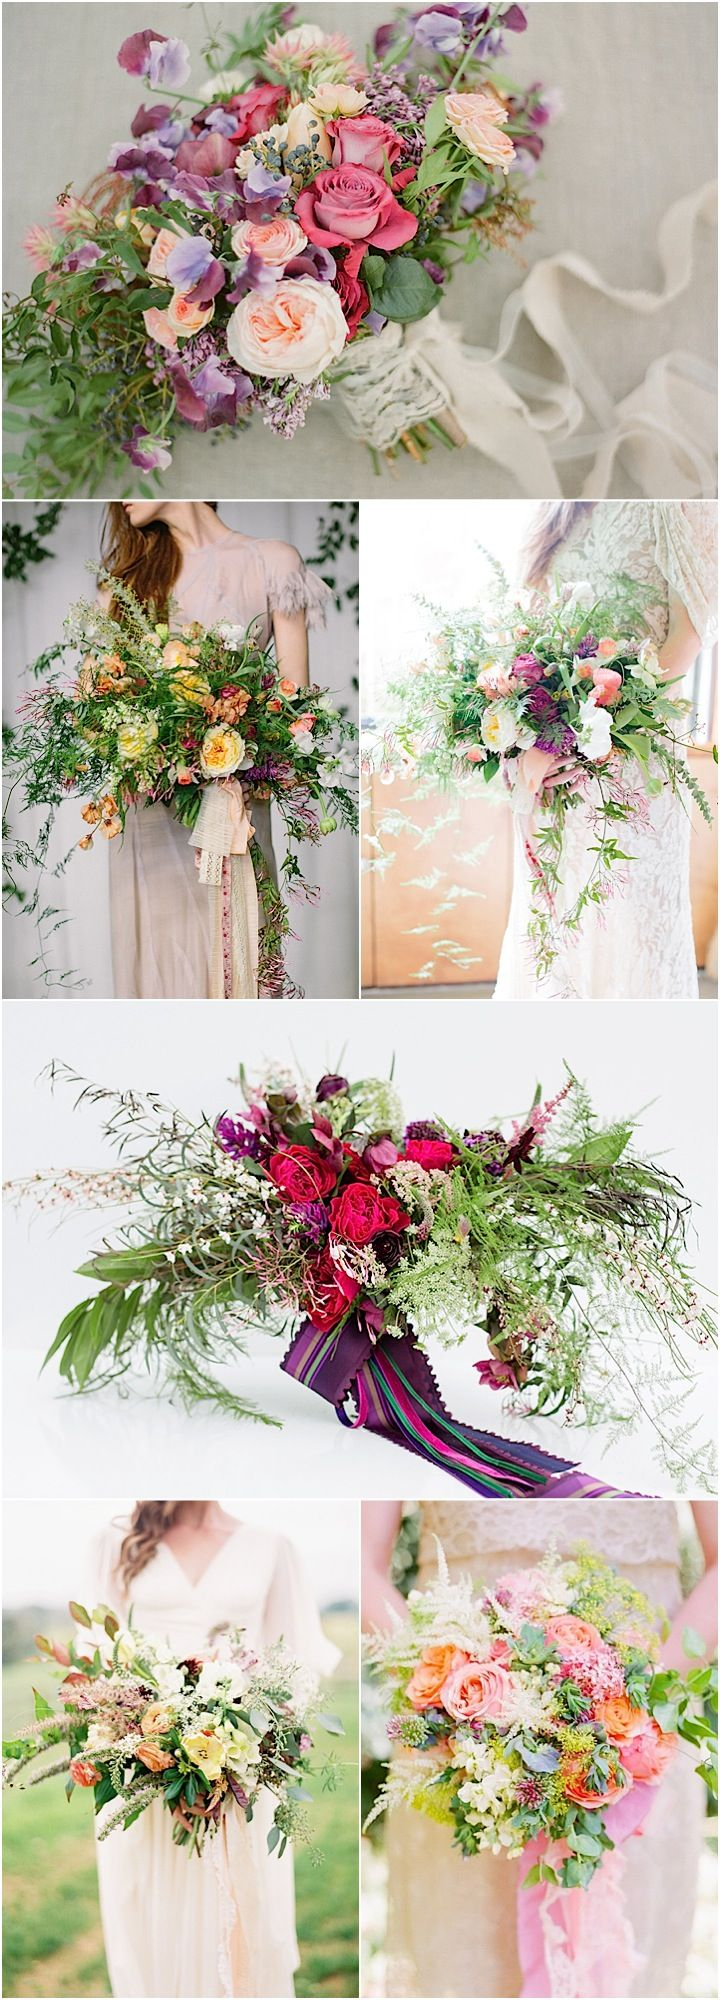 Wedding Ideas: How to Create Loose, Airy Wedding Bouquets